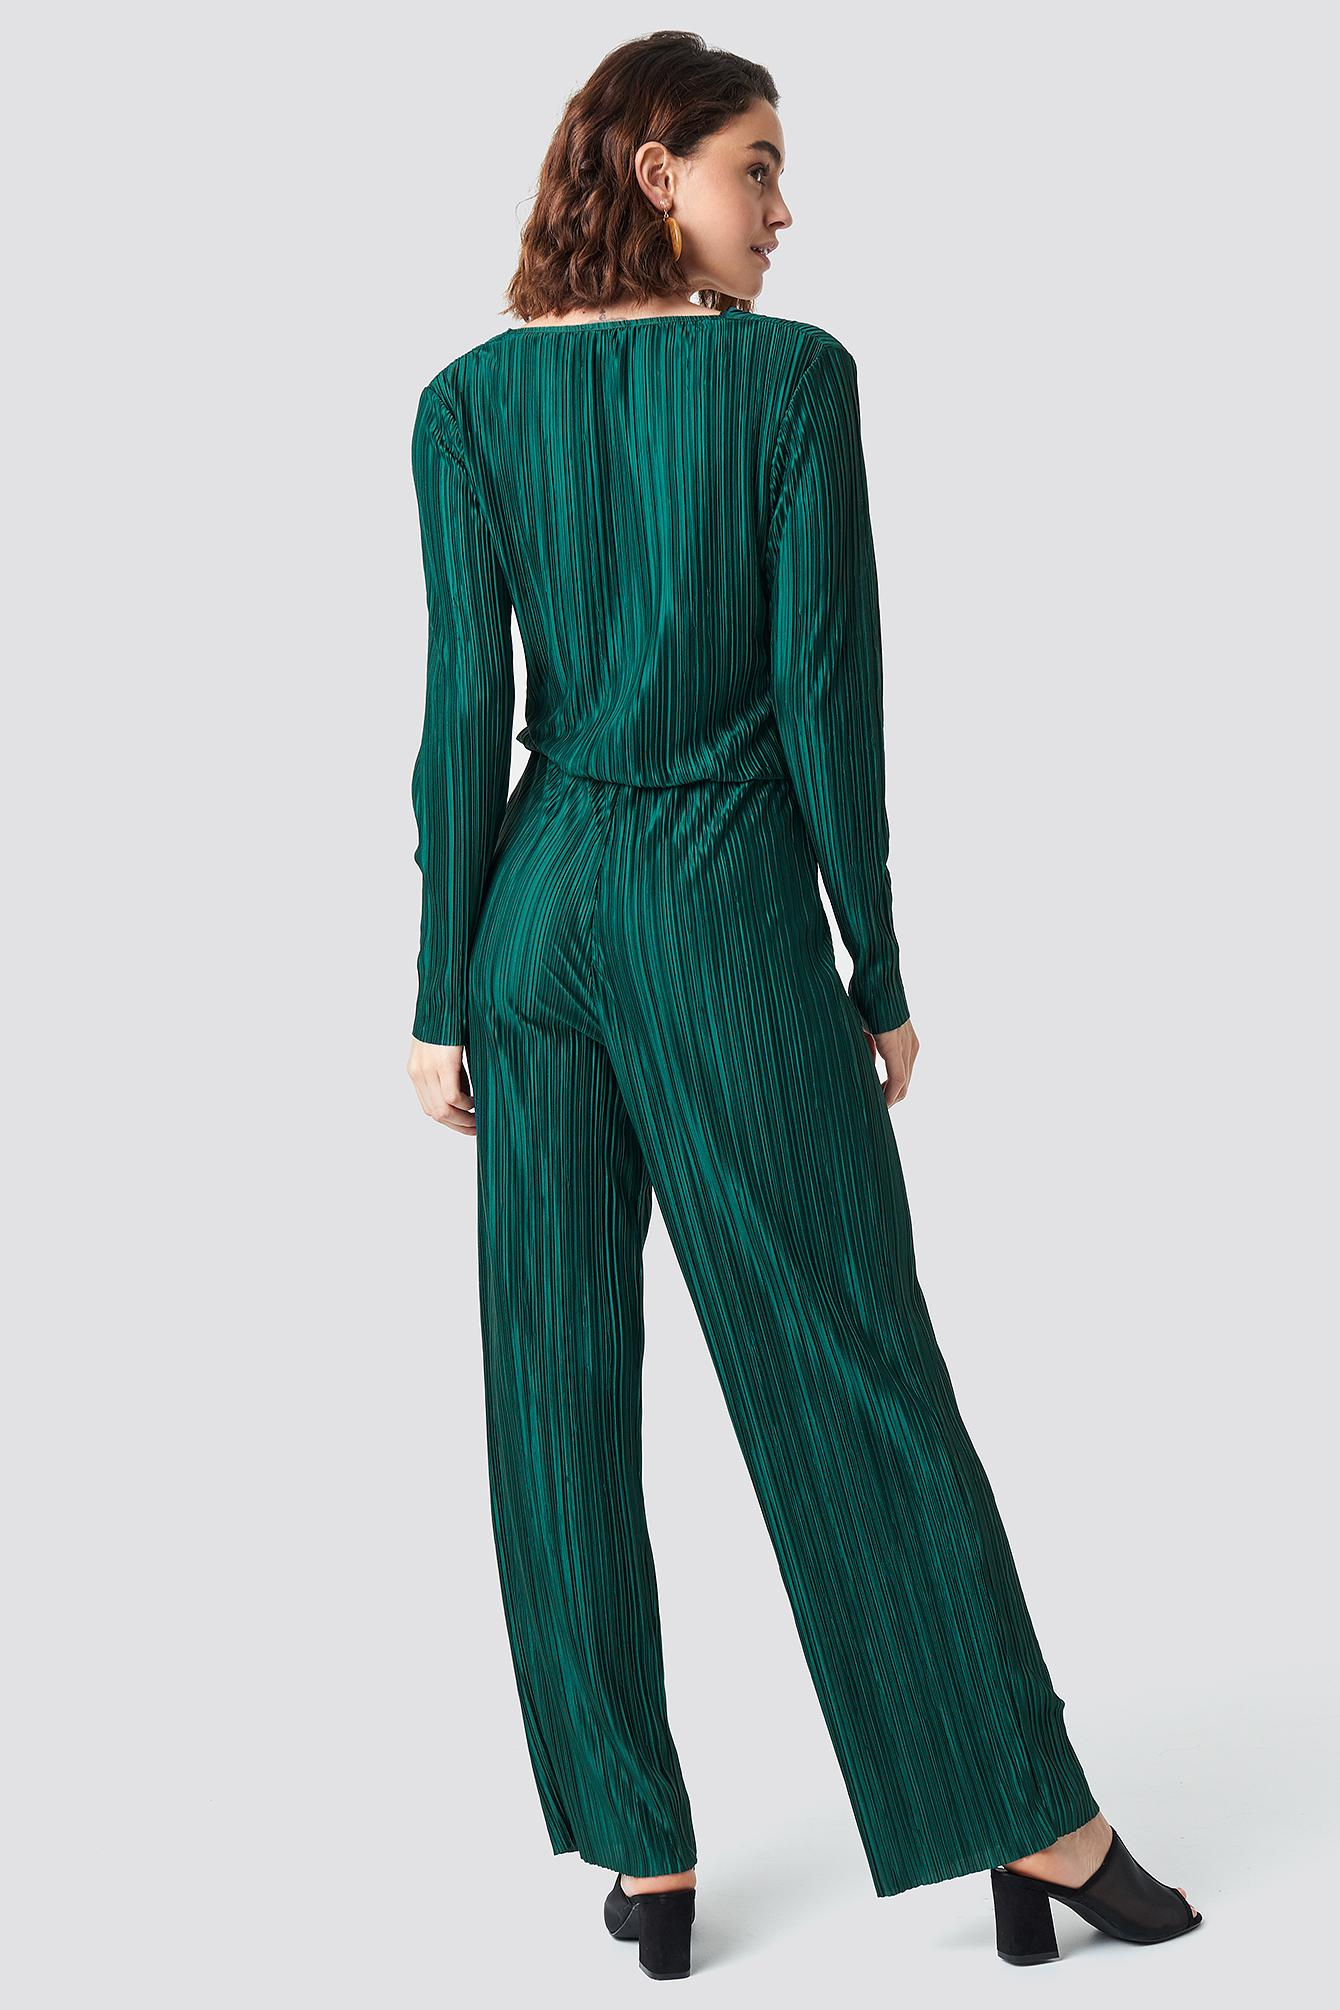 8aab0f84abce Lyst - Rut Circle Pleated Jumpsuit Dark Green in Green